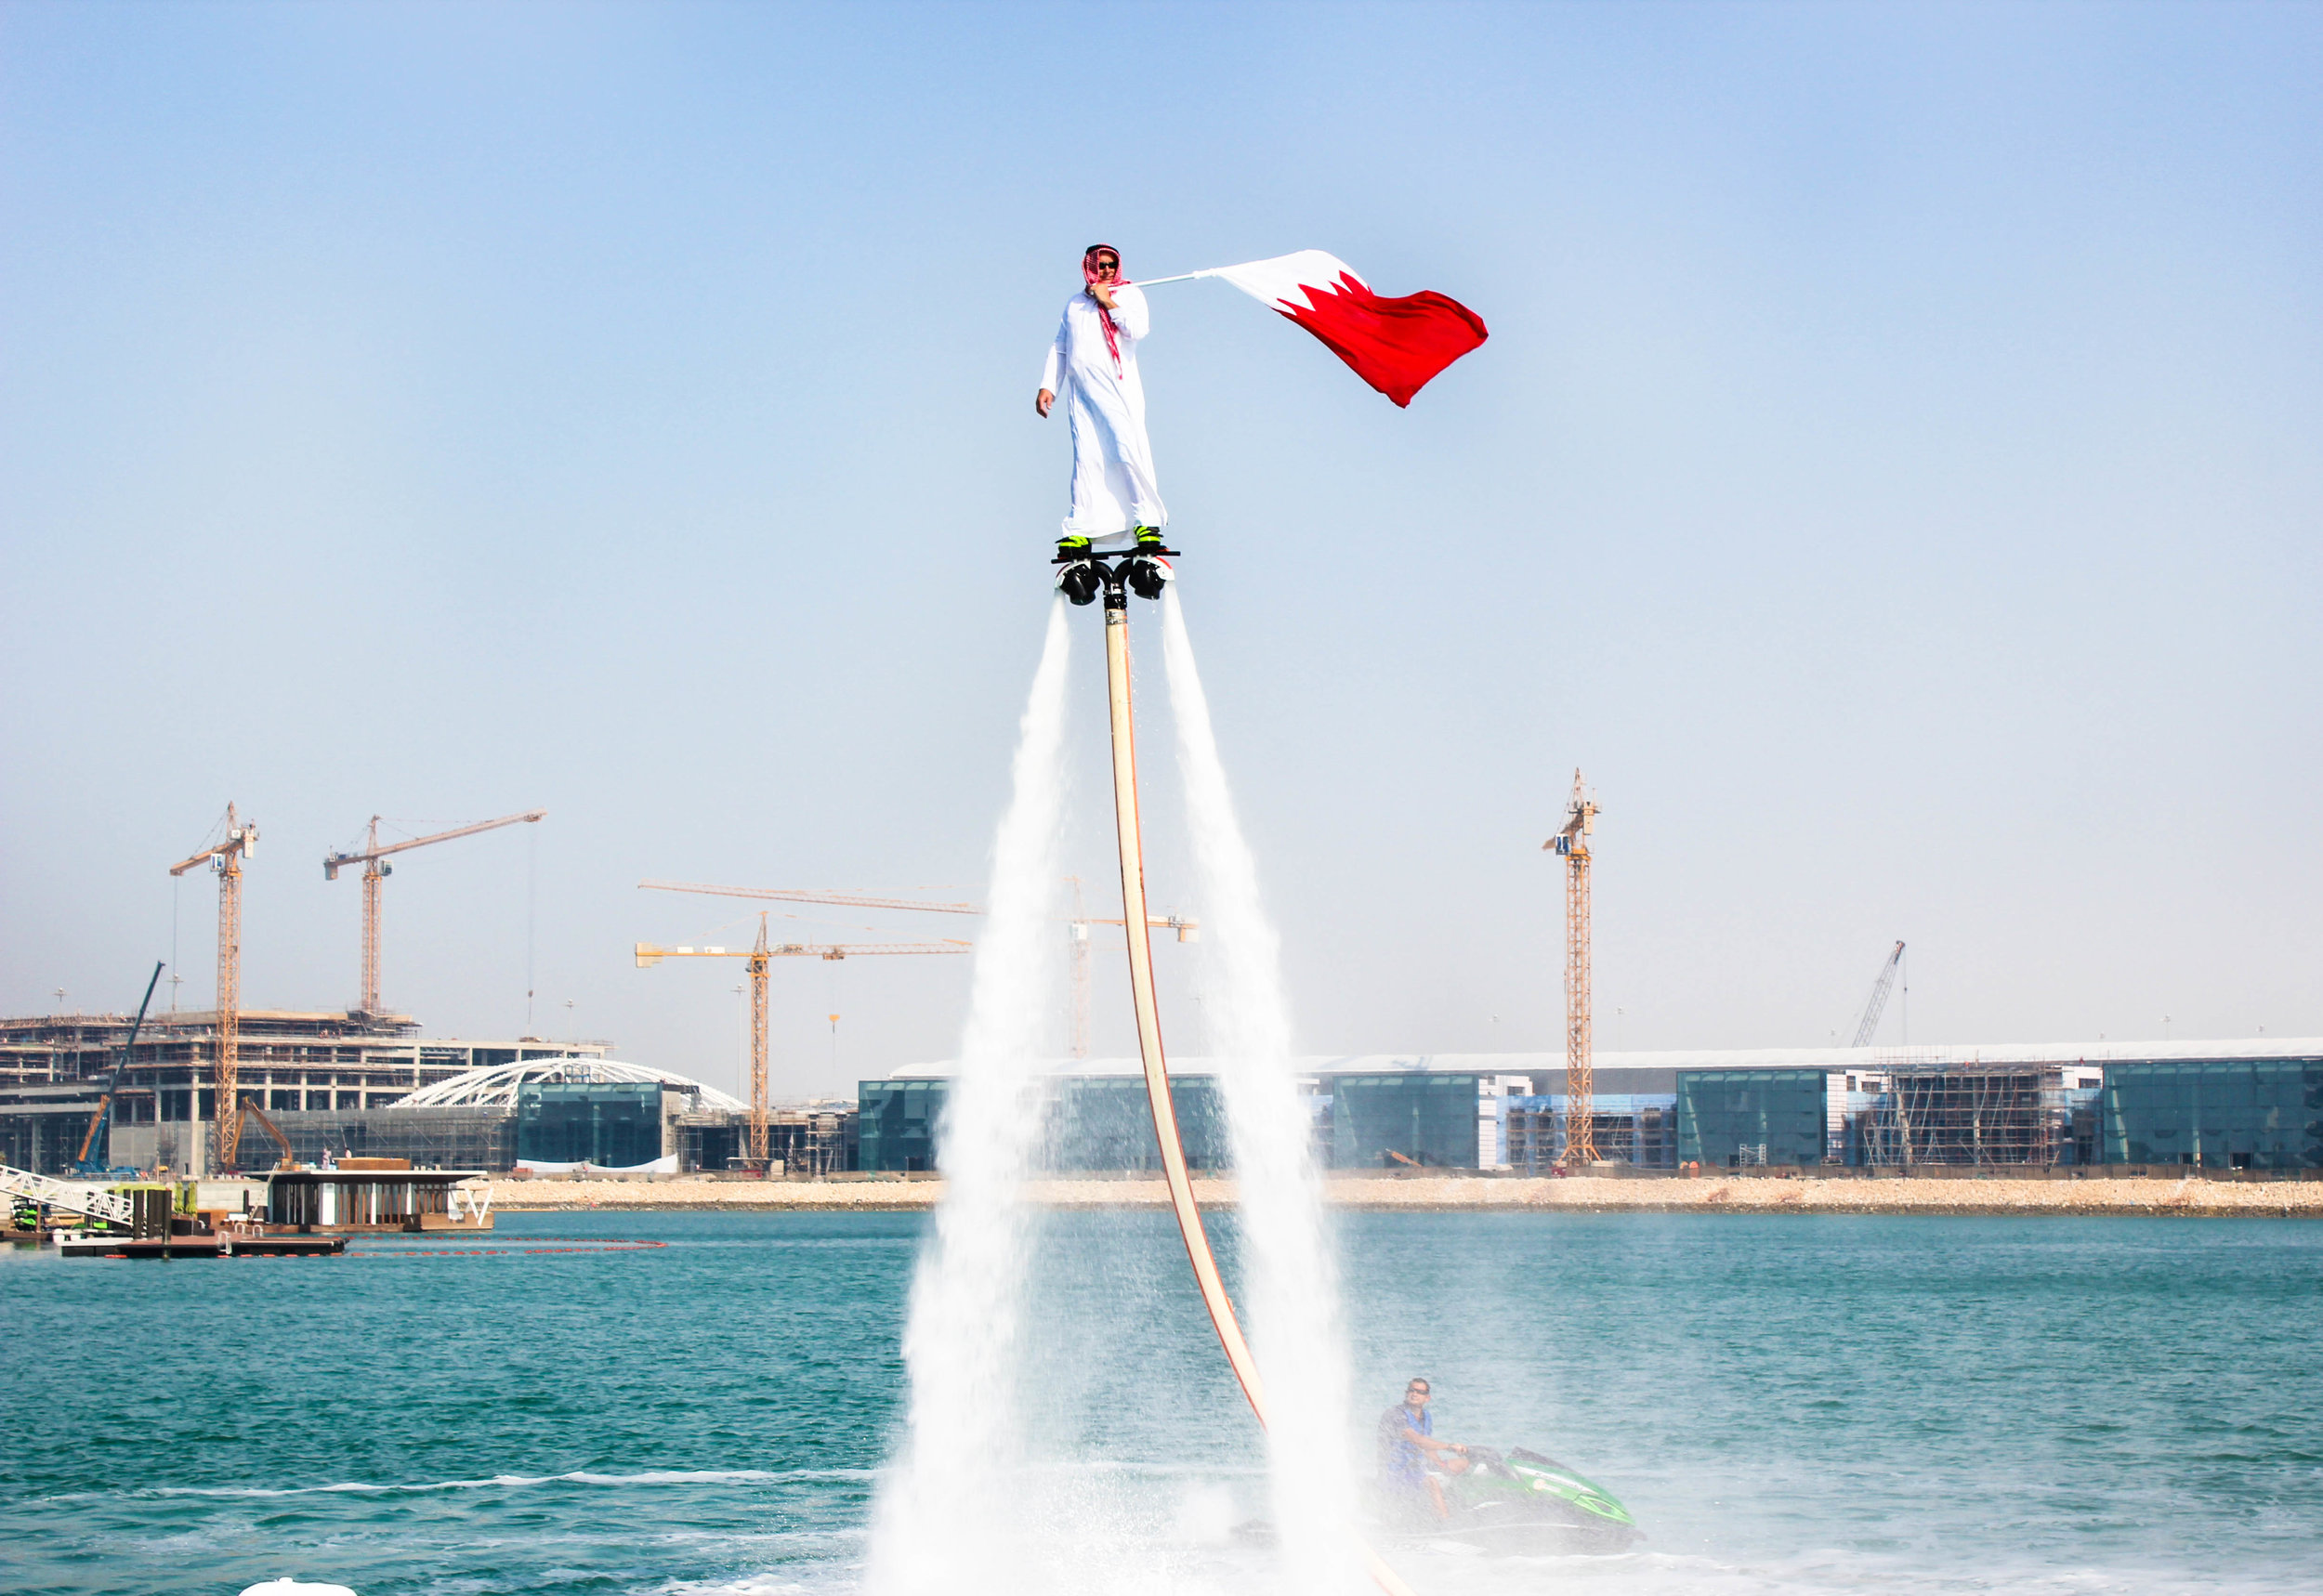 Fly Board Bahrain